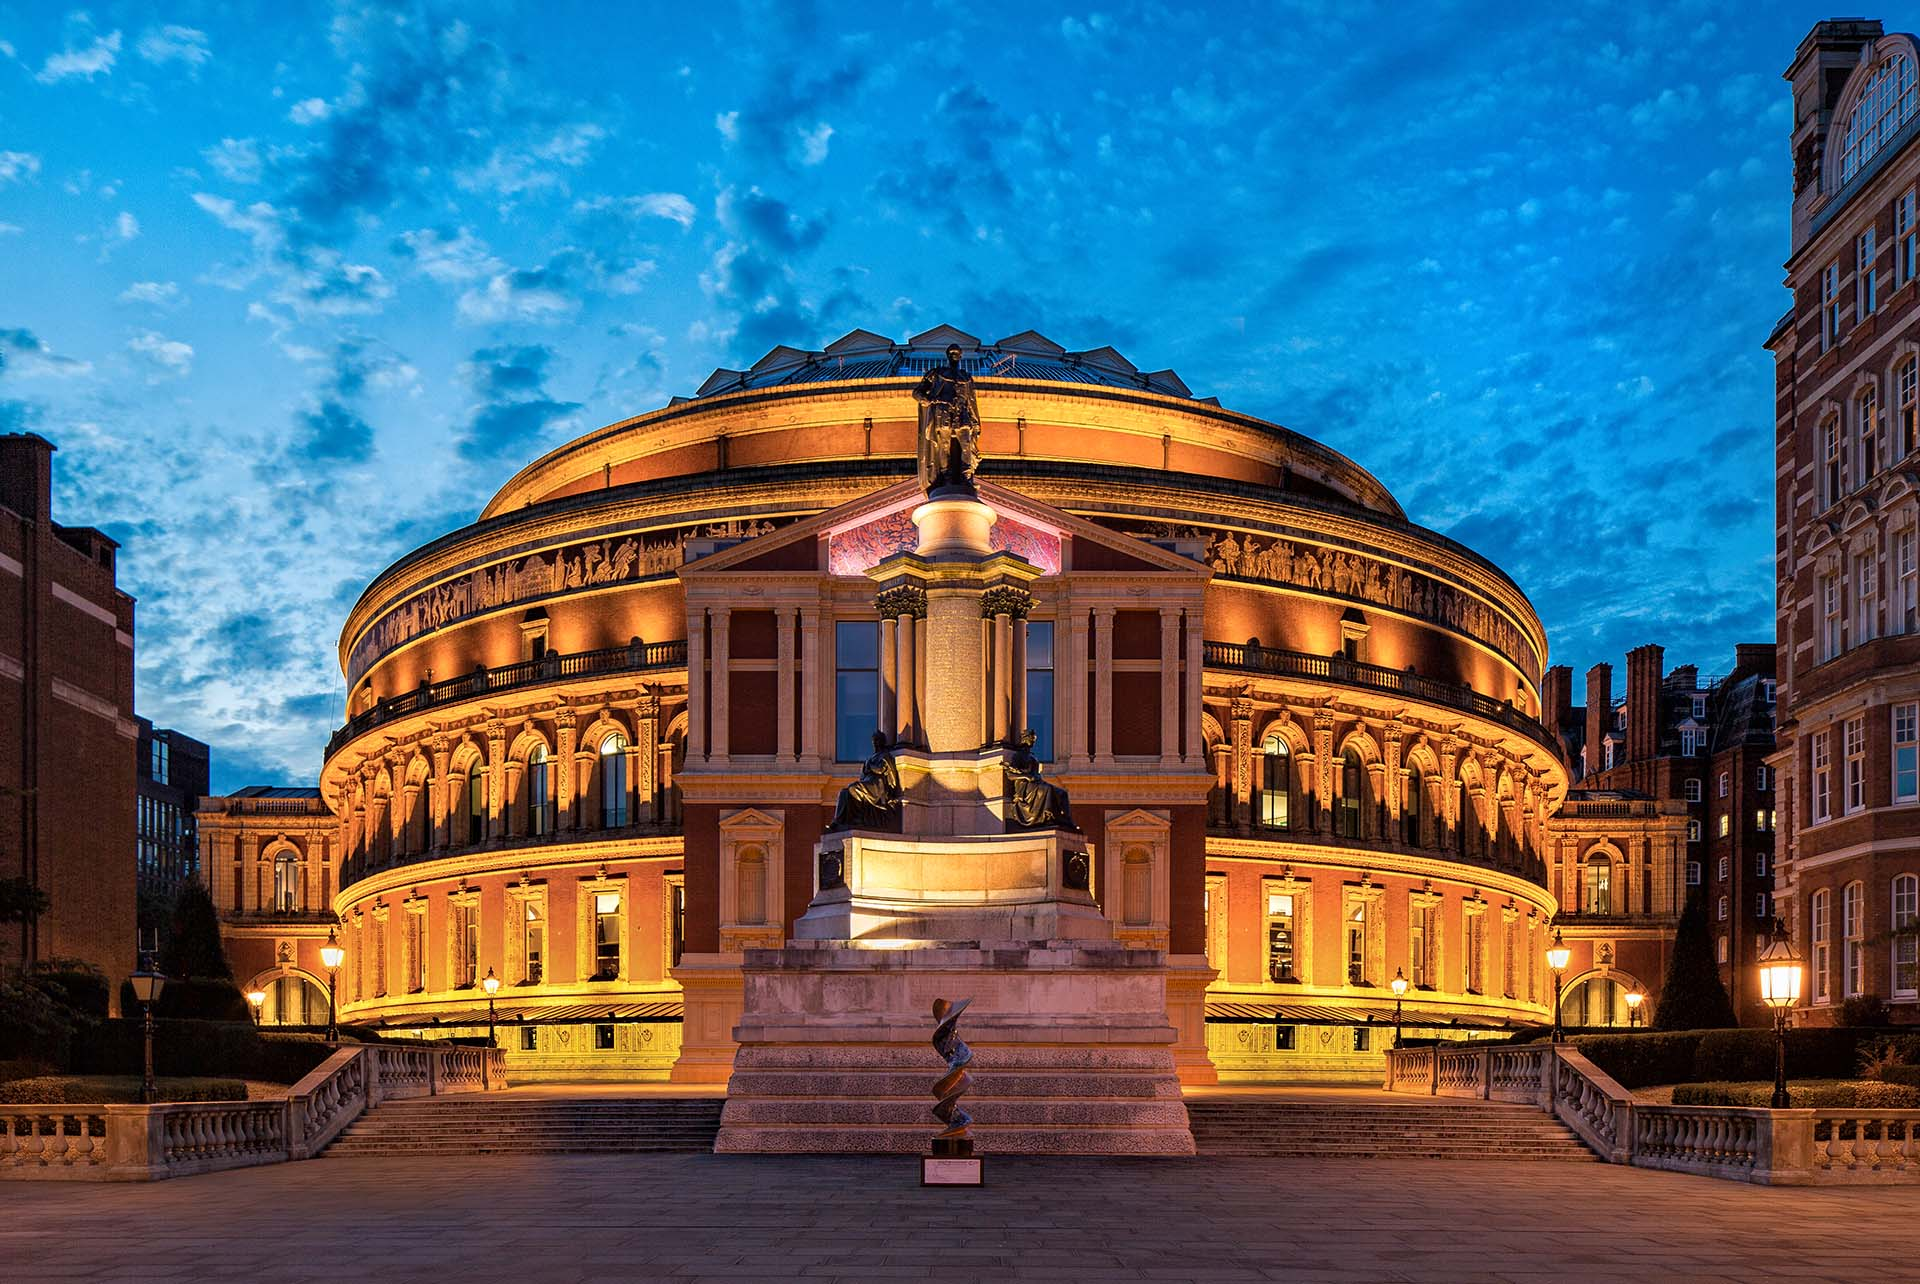 The Royal Albert Hall's South entrance at night